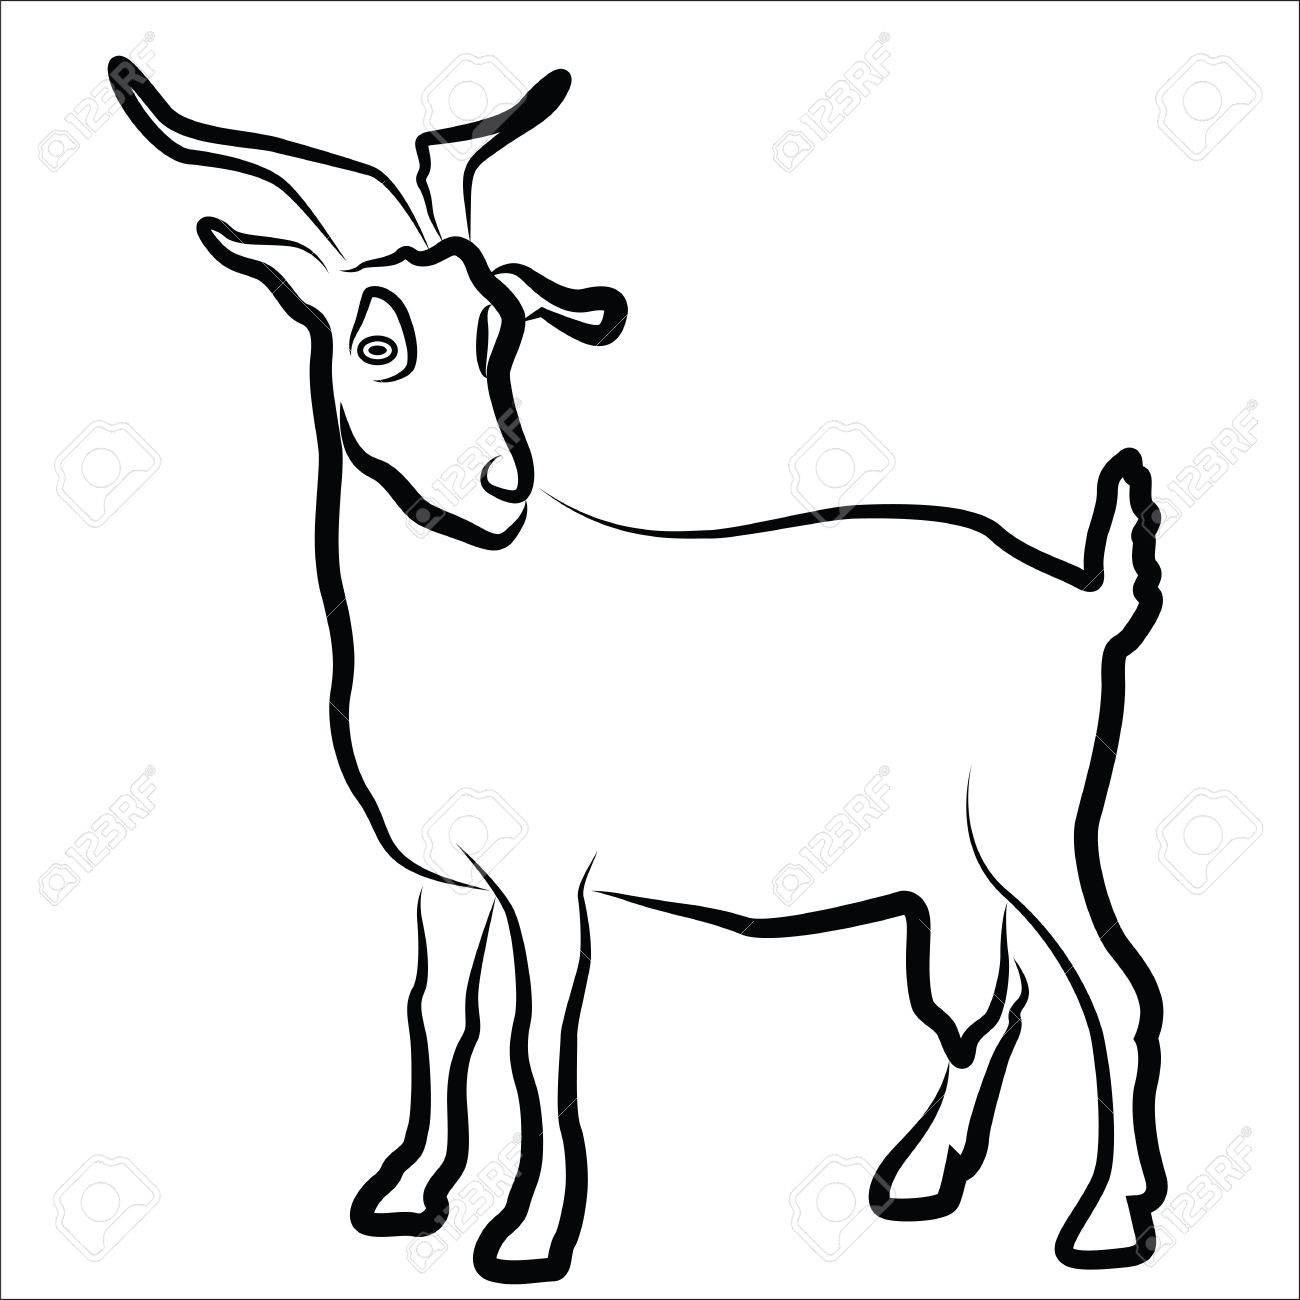 Goat silhouette isolated on white Stock Vector - 20085712